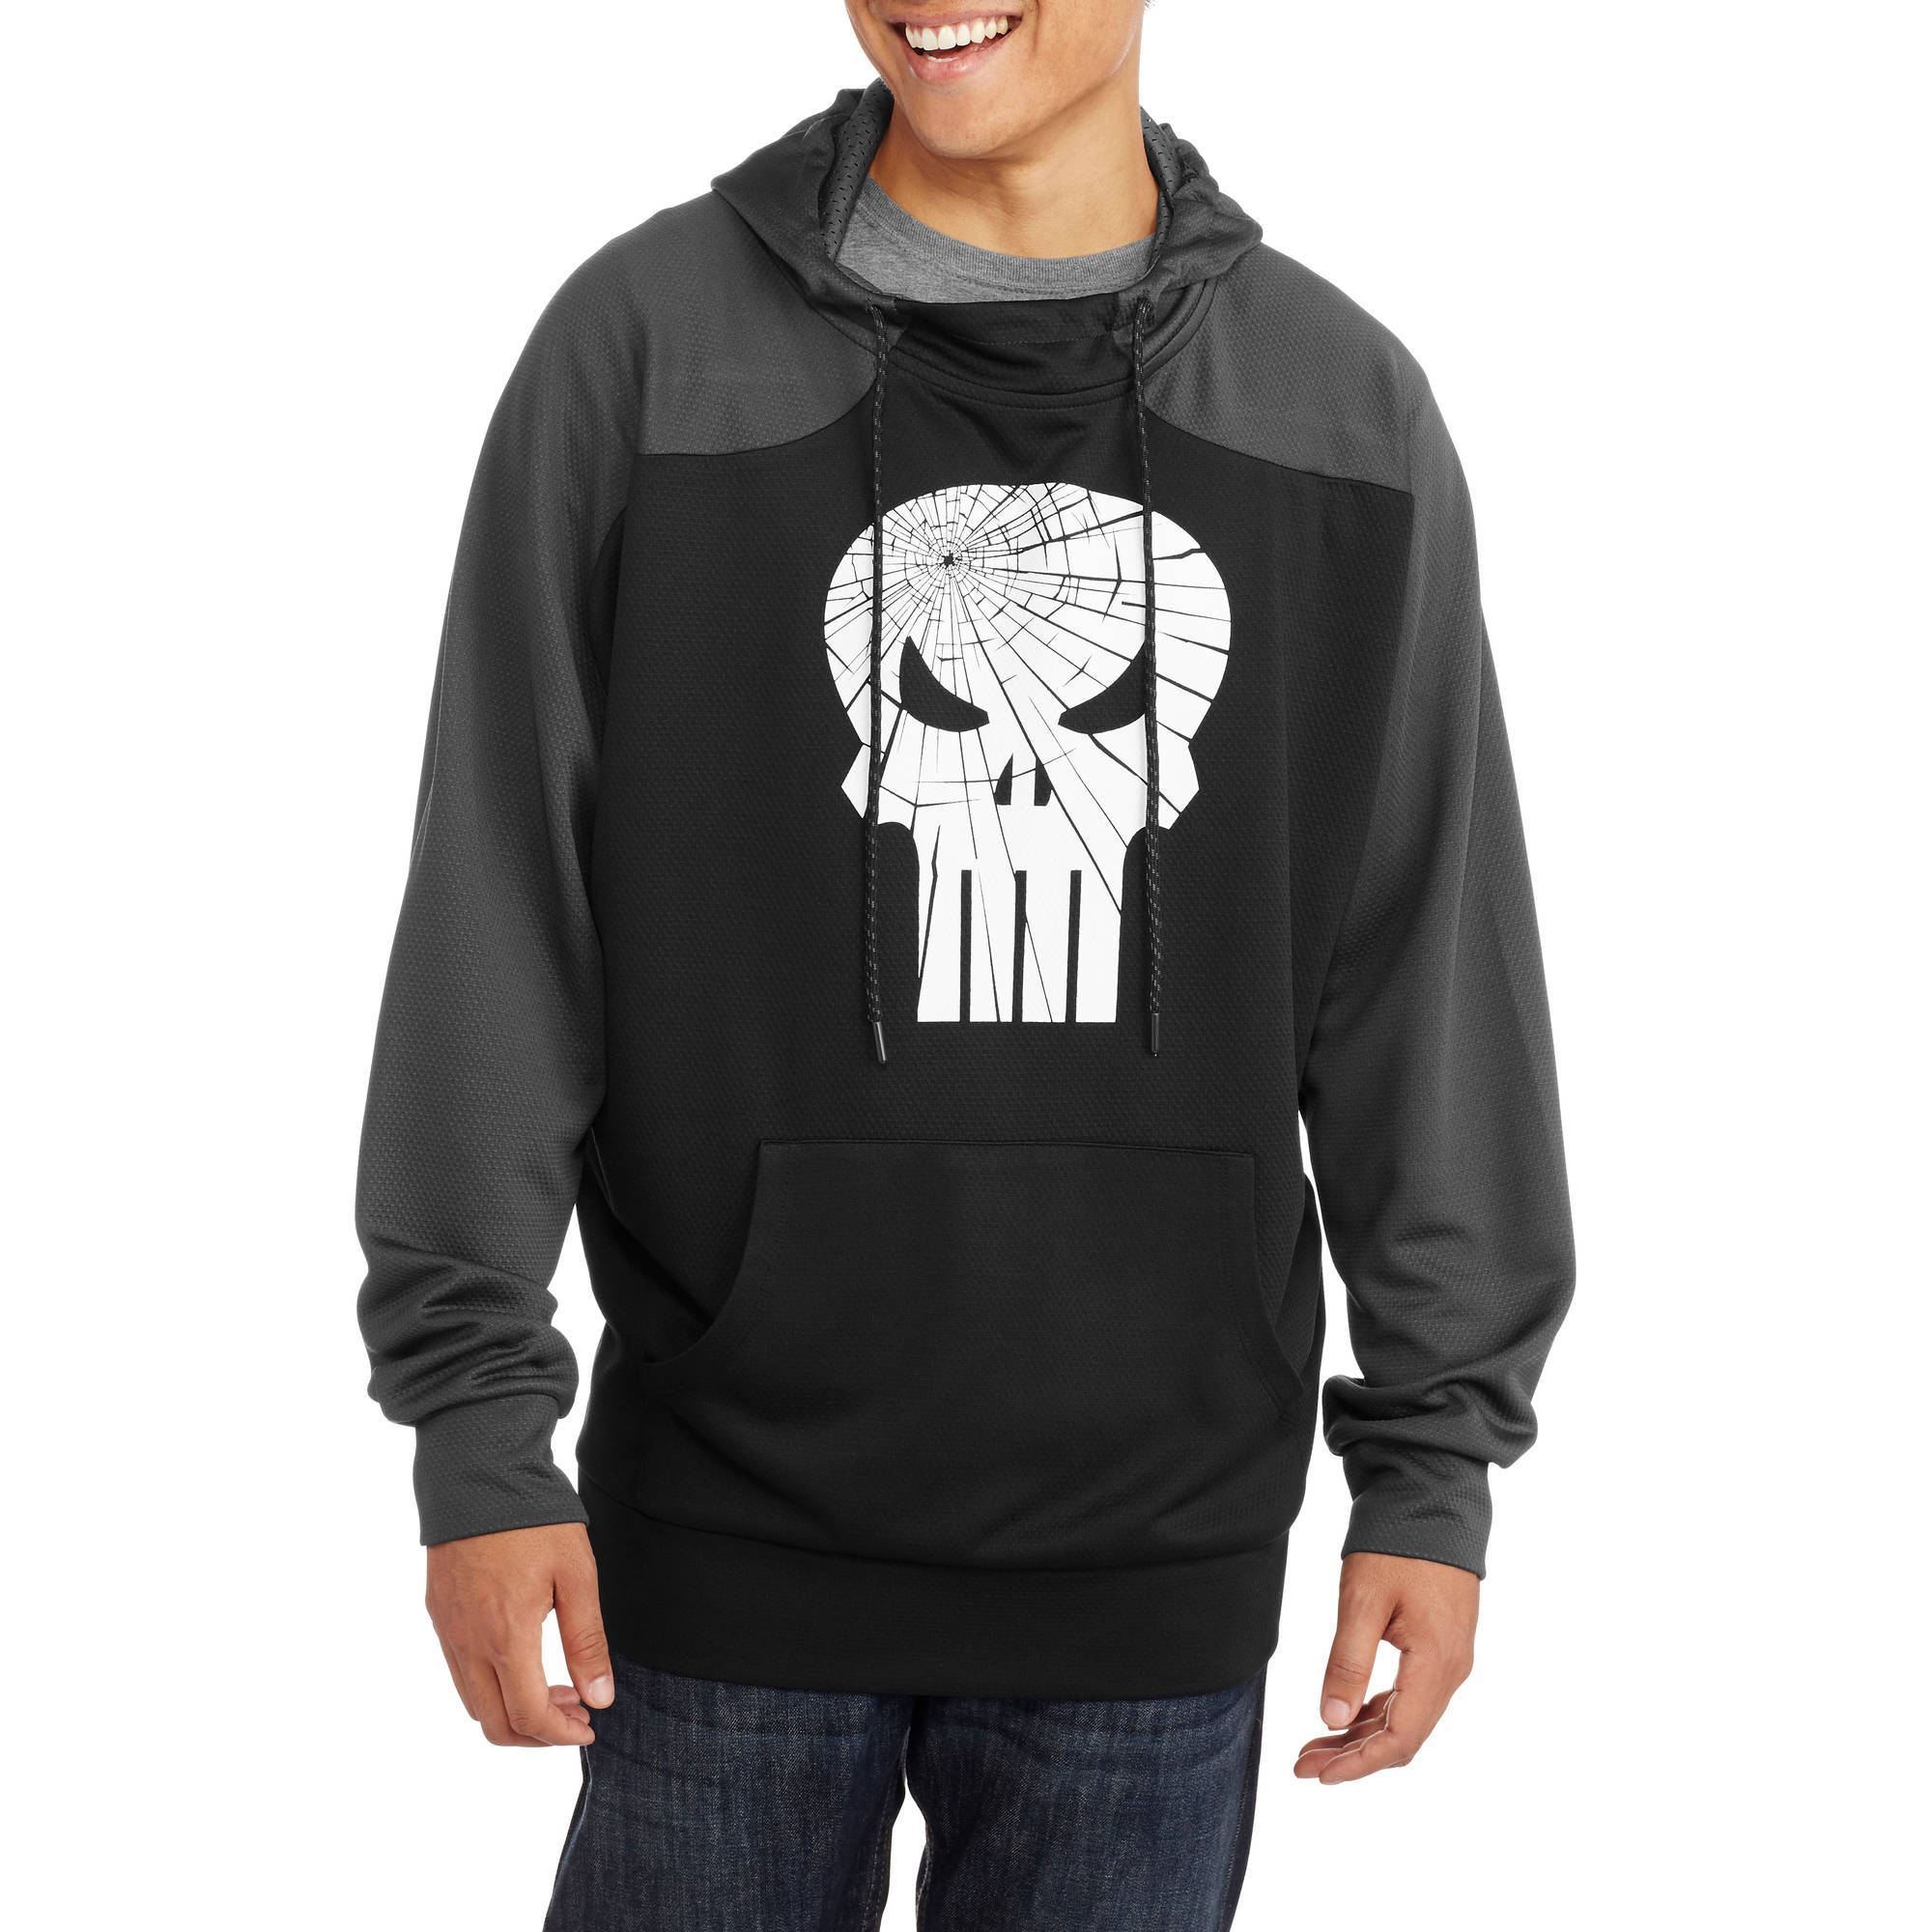 Punisher Big Men's Graphic Poly Thermal Scuba Hoodie, 2XL